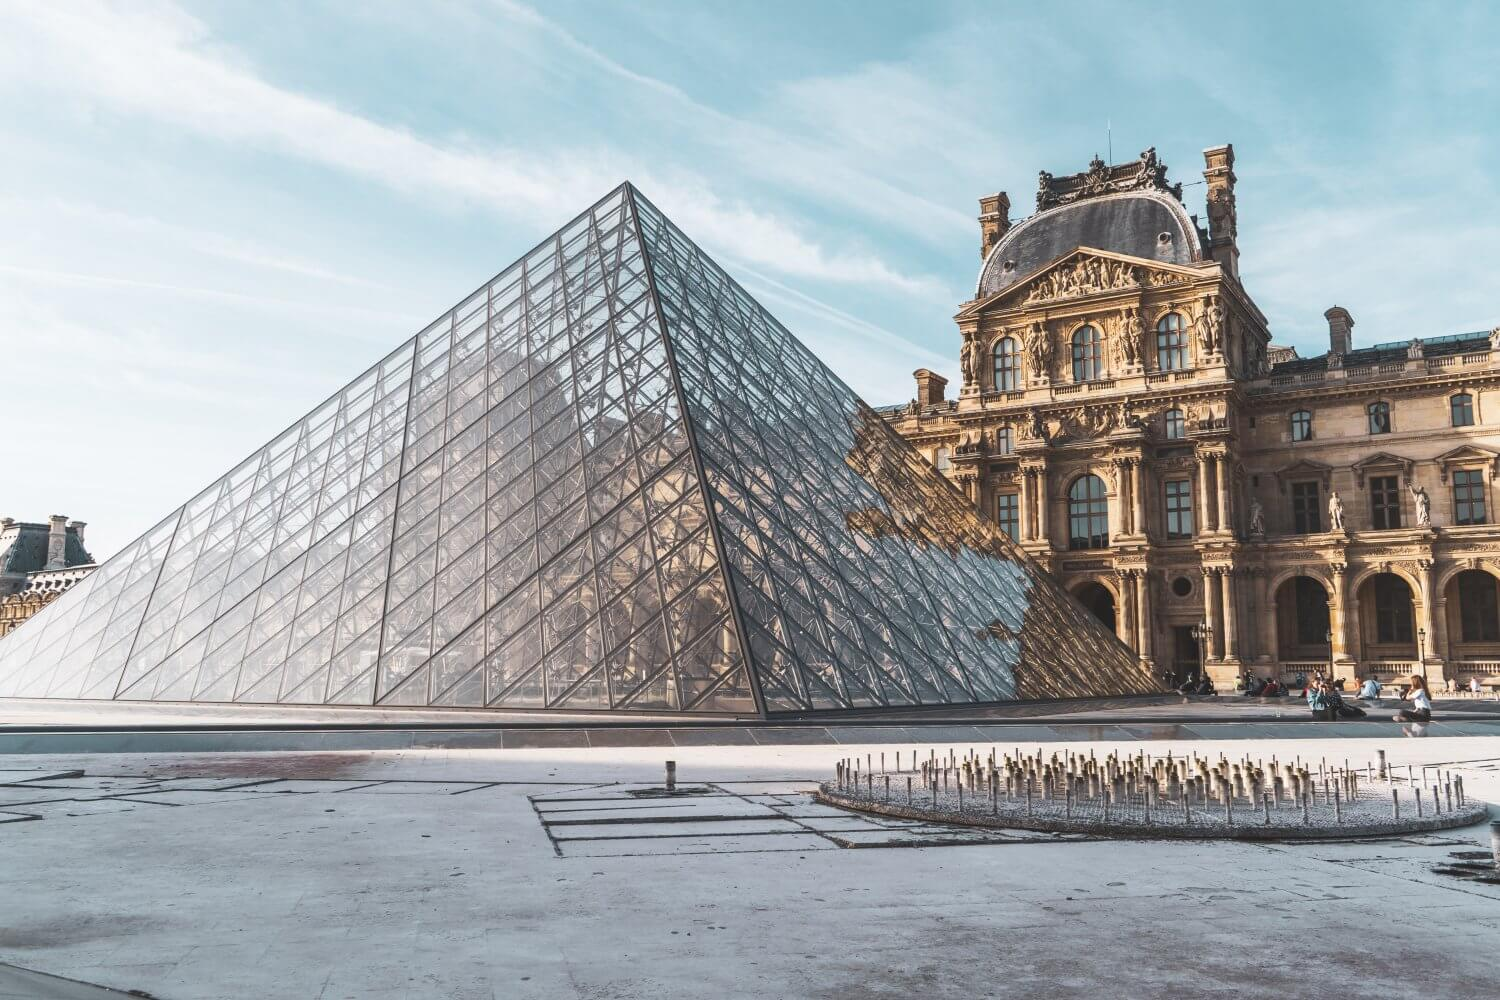 The Louvre museum, one of the most important Paris landmarks